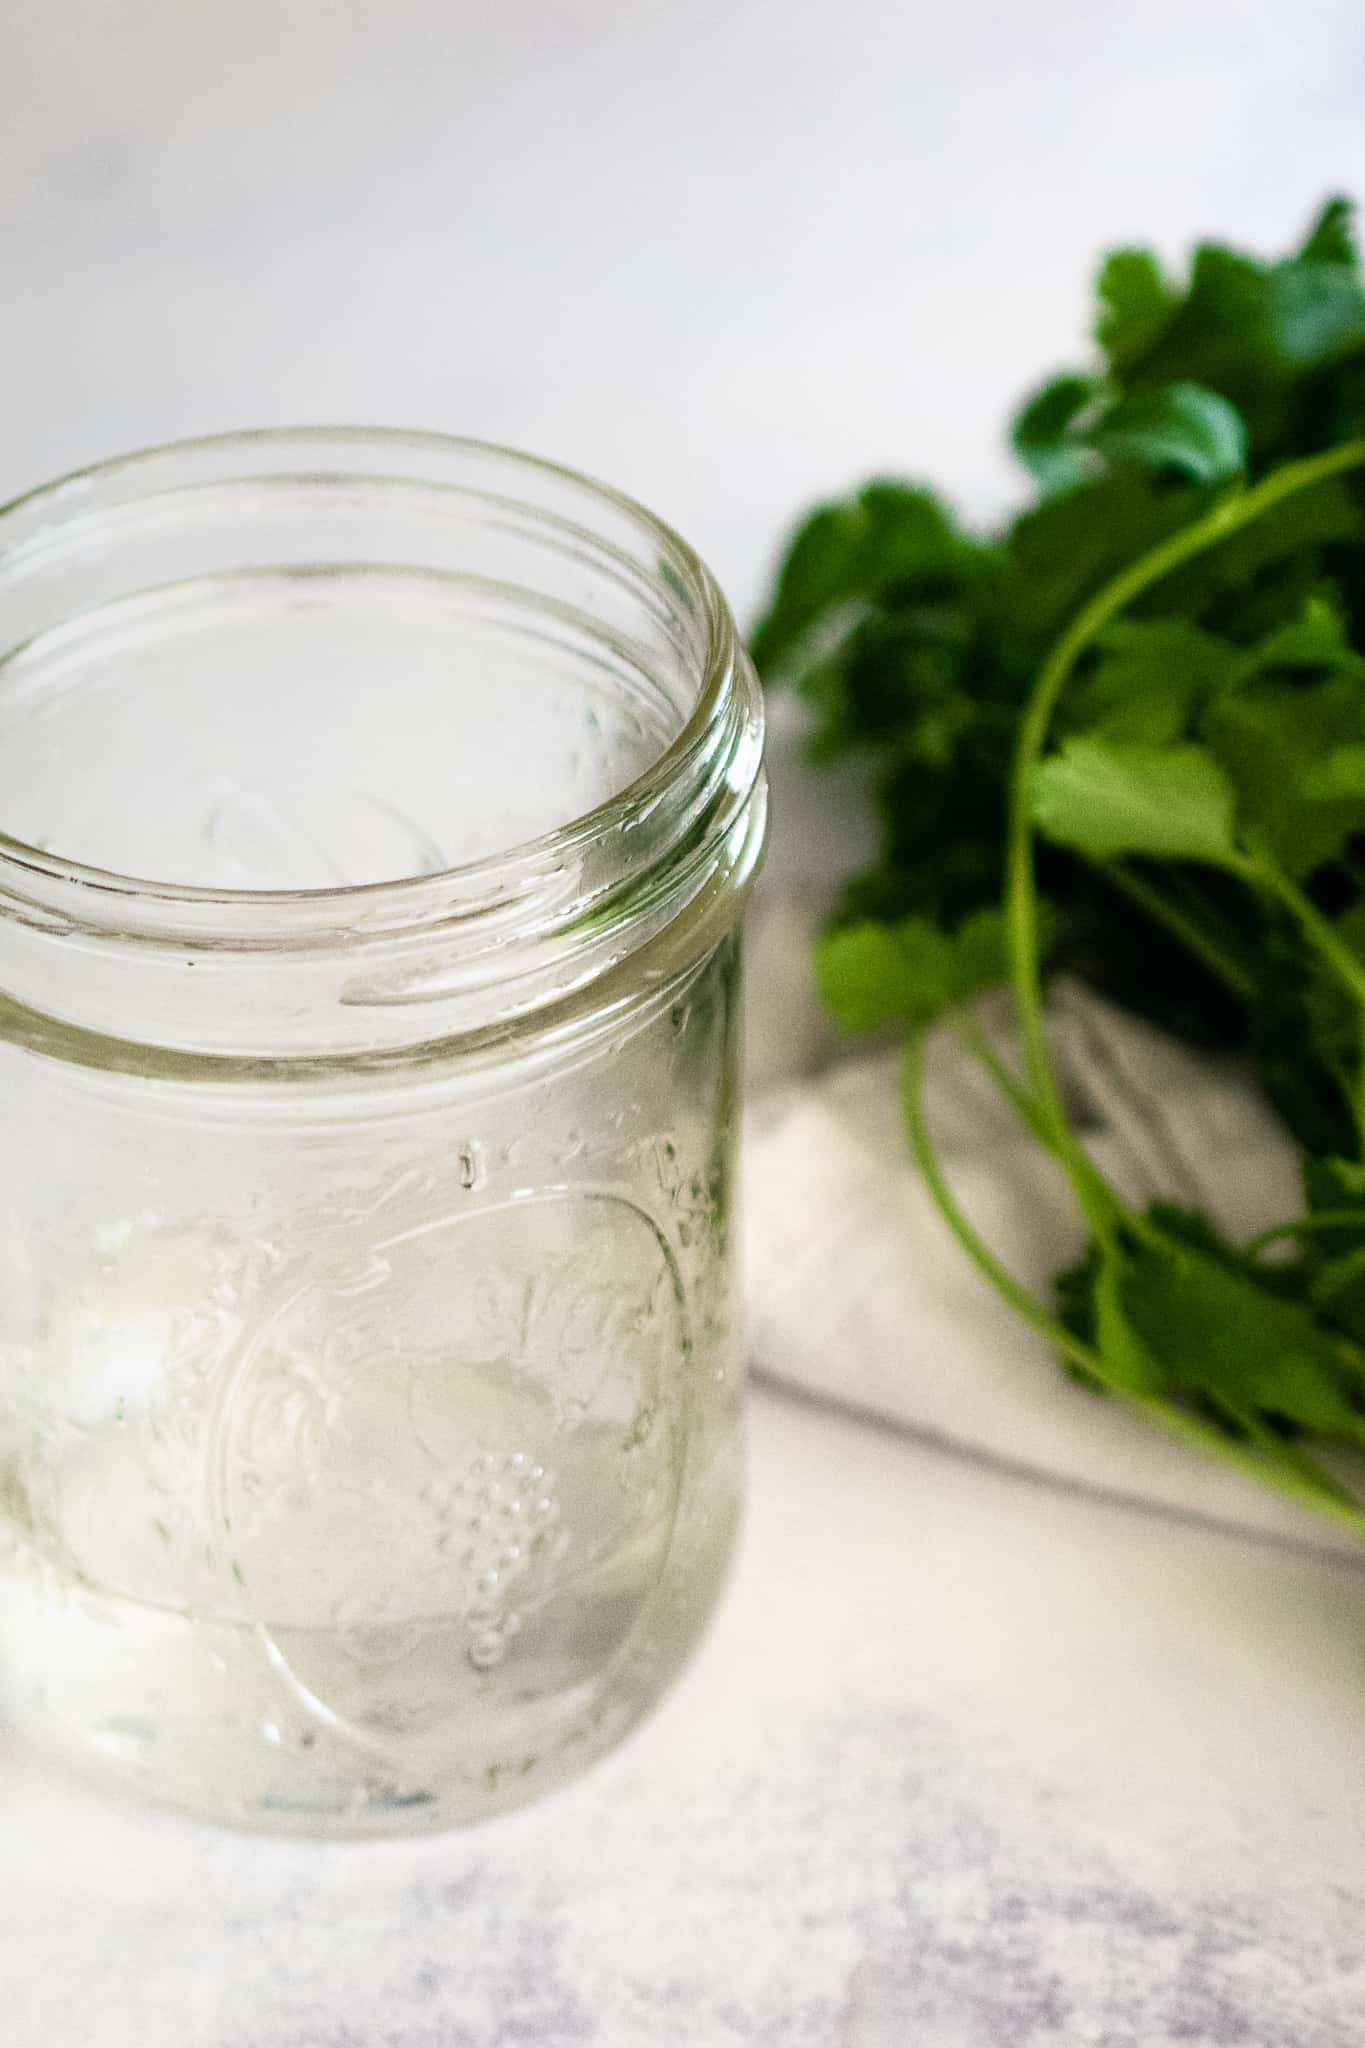 mason jar with a small amount of water next to bundle of fresh cilantro